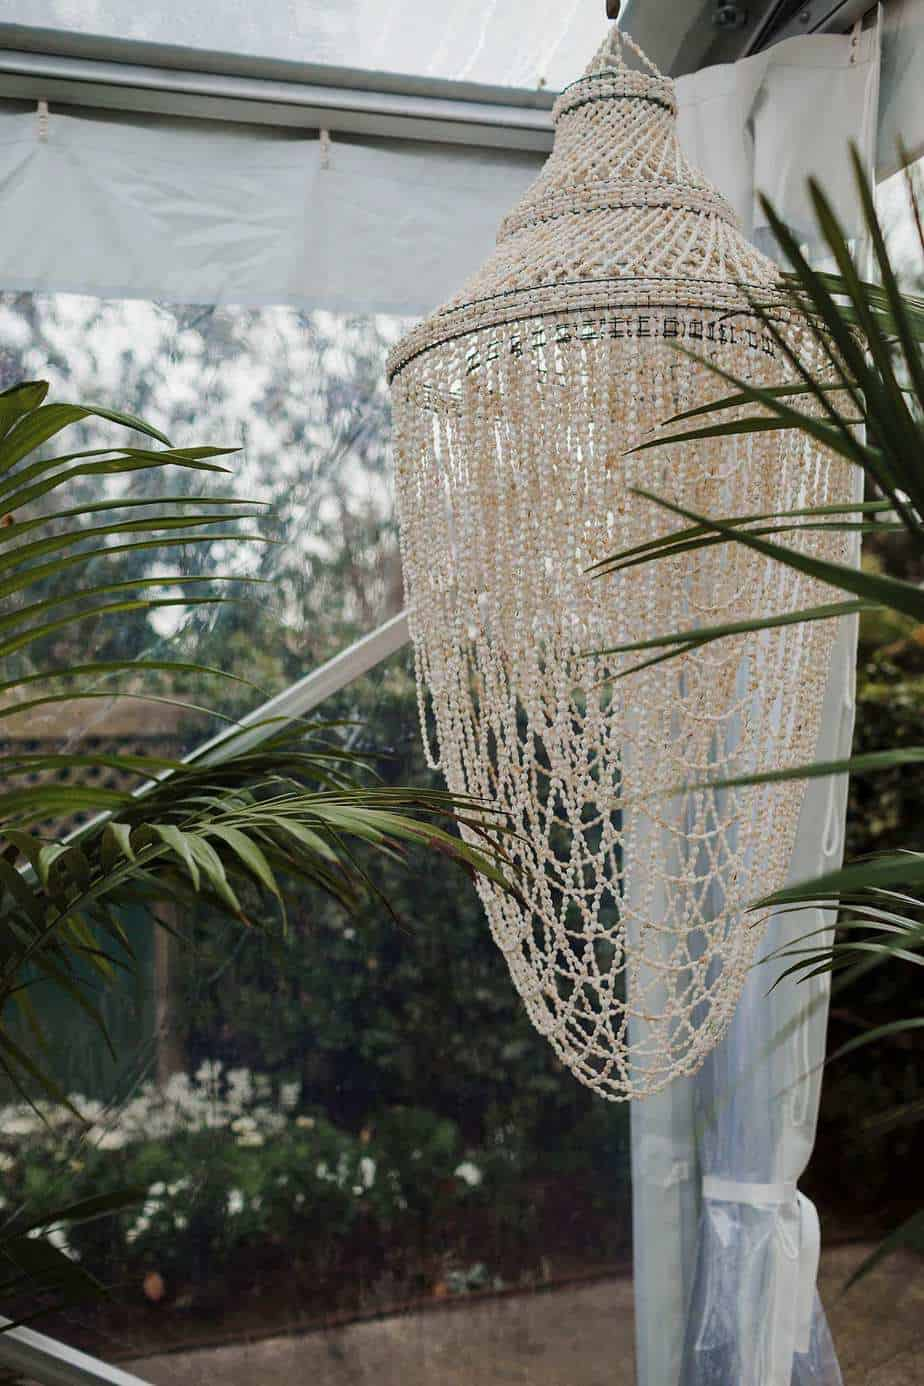 wedding chair hire hamilton nz savannah's cover rentals & events shell chandelier and styling raglan